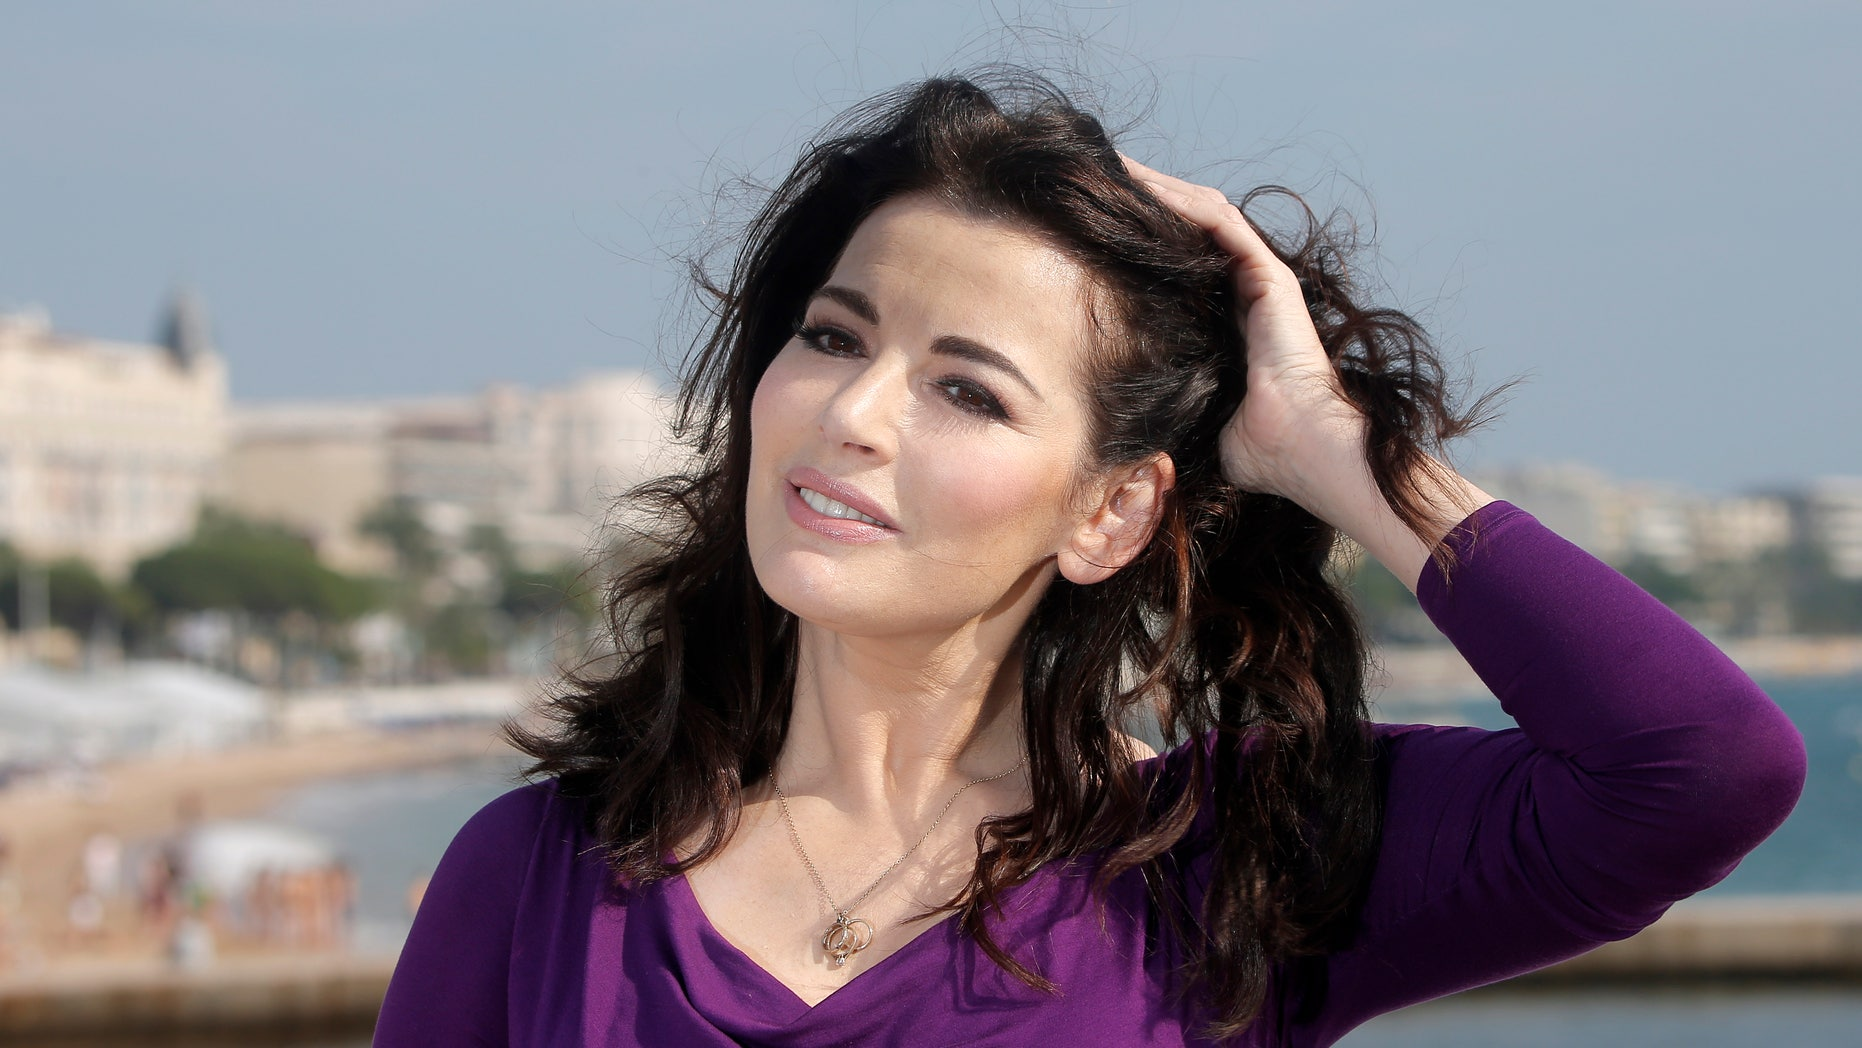 Oct. 9, 2012 - FILE photo, English food writer, journalist and broadcaster, Nigella Lawson poses in Cannes, southeastern France.